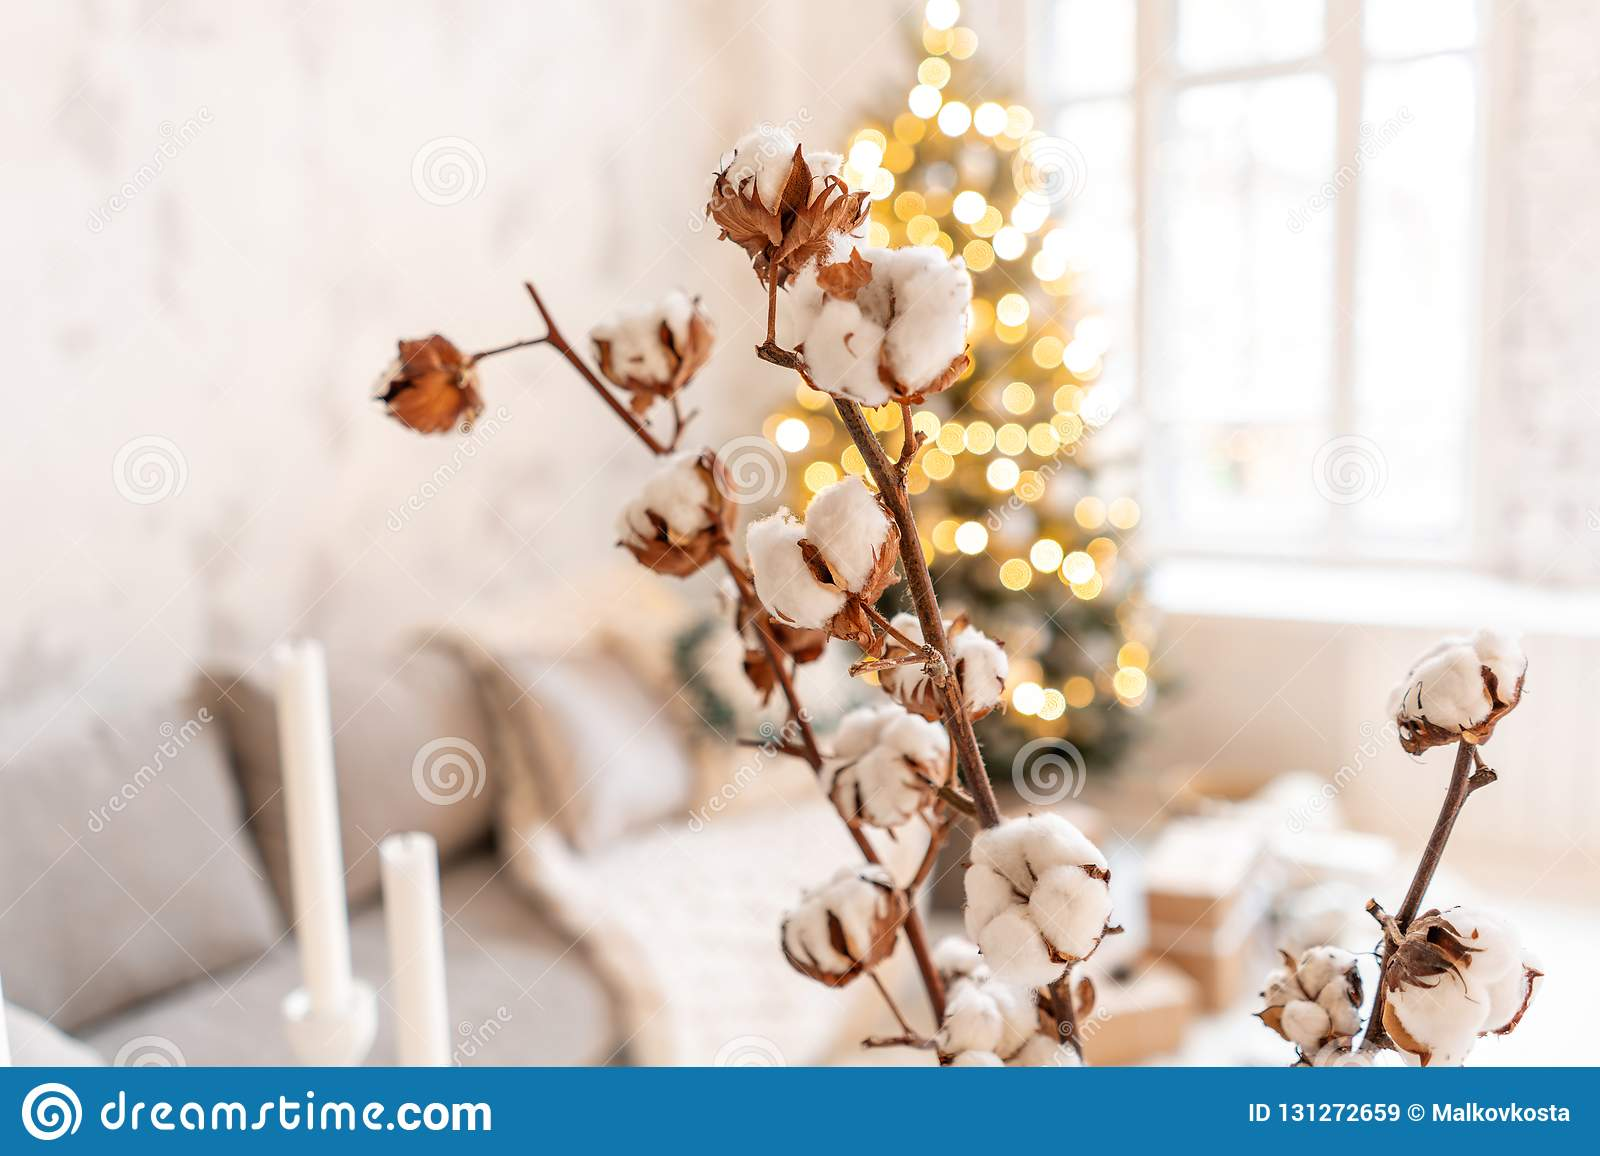 Vase With Cotton Branches Light Living Room With Christmas Tree Comfortable Sofa High Large Windows Stock Image Image Of Decorated Decoration 131272659